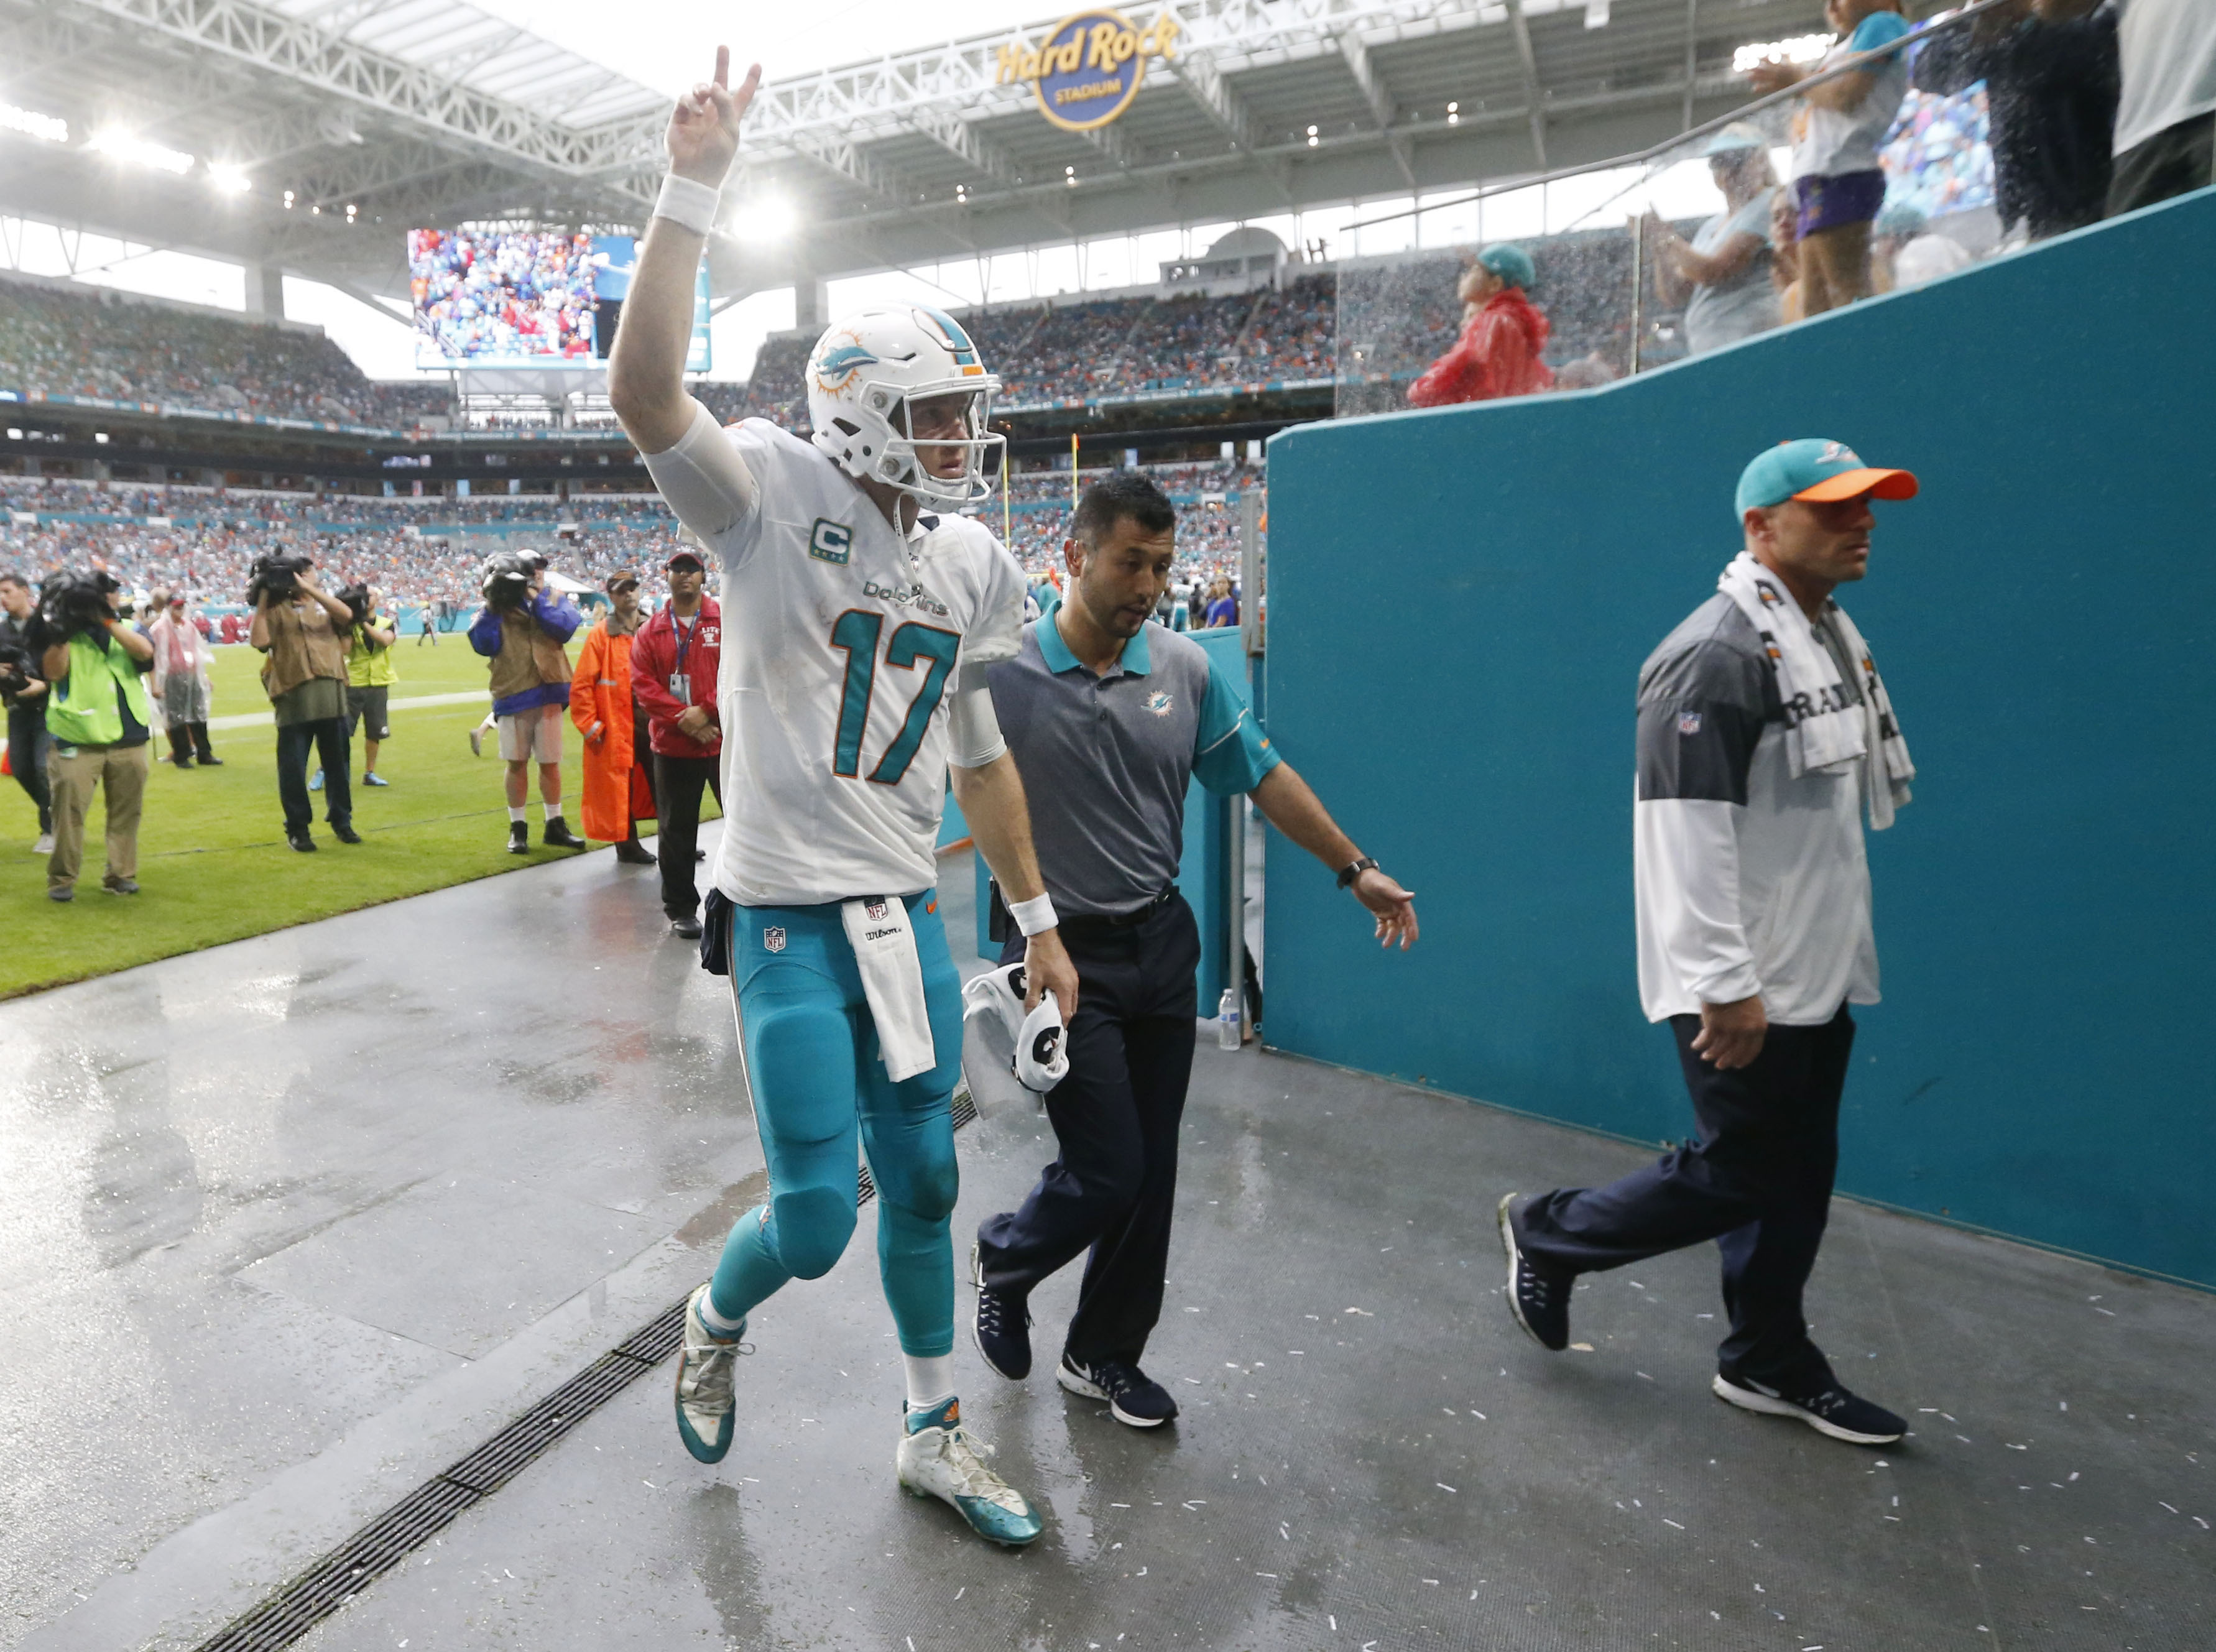 Miami Dolphins quarterback Ryan Tannehill (17) waves to fans as he is escorted off the field after he was injured, during the second half of an NFL football game against the Arizona Cardinals, Sunday, Dec. 11, 2016, in Miami Gardens, Fla. (AP Photo/Wilfre